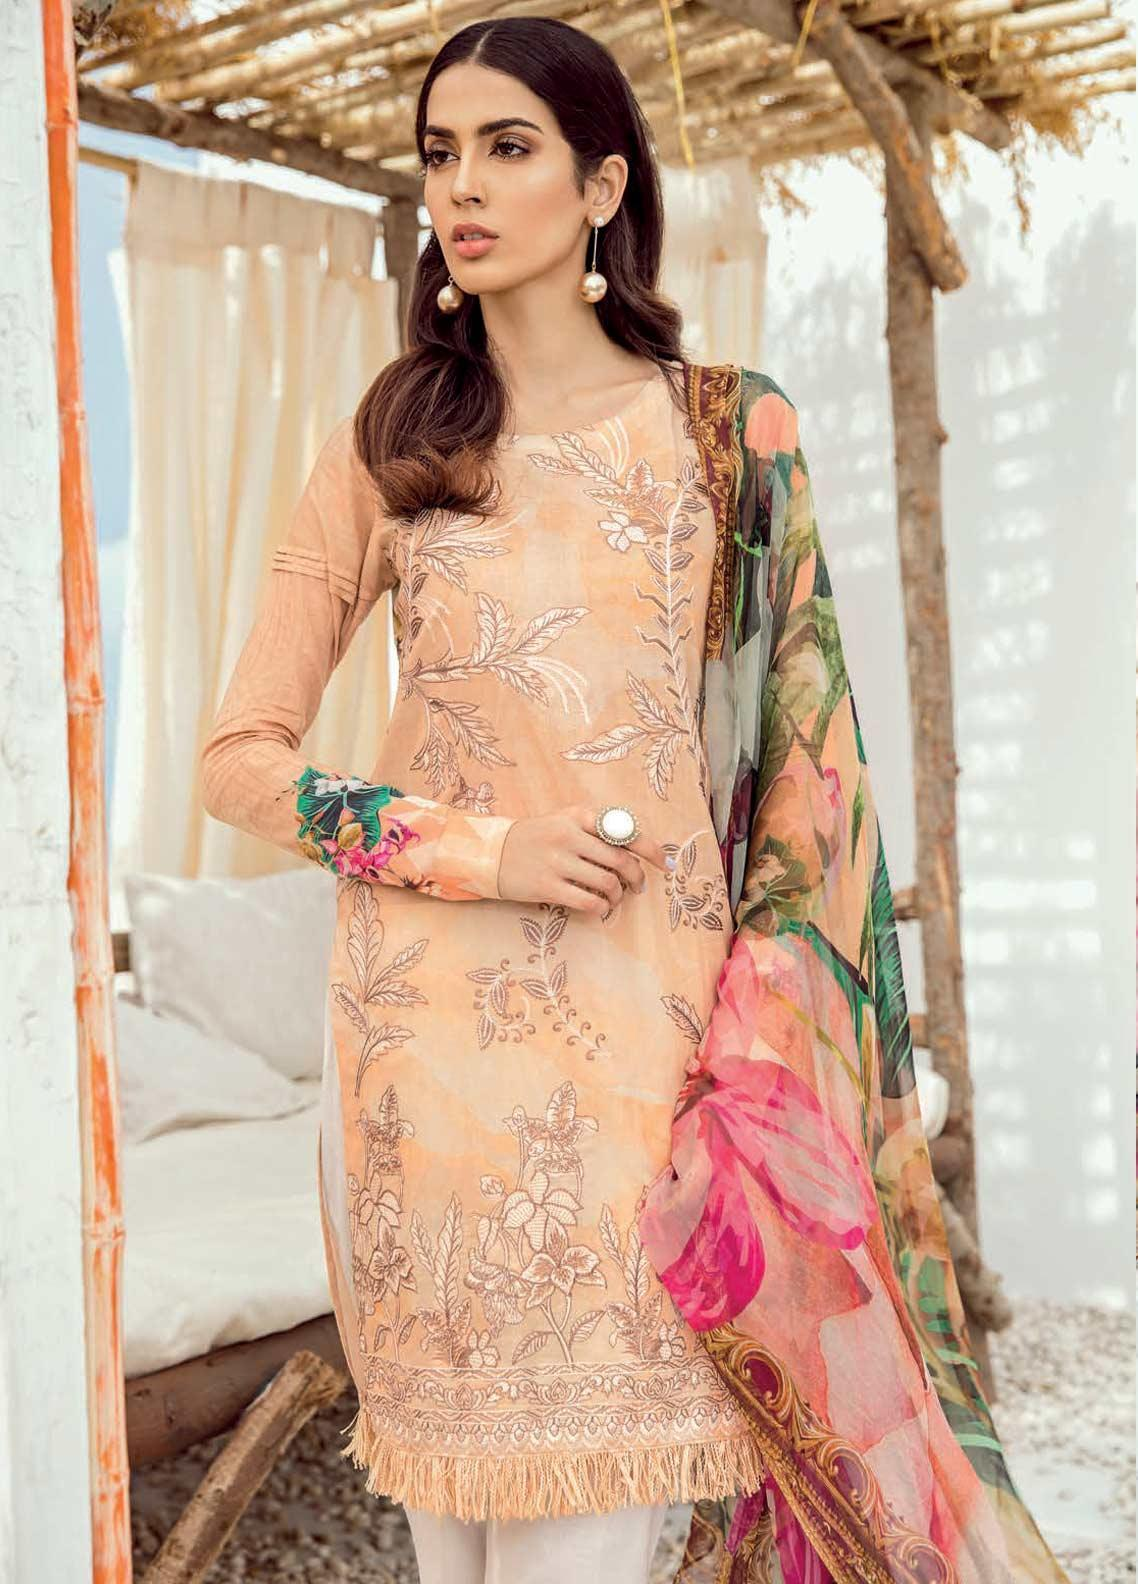 529ac98283 Iznik Chiffon & Iznik Lawn 2019 Suits Collection - Iznik Chinon ...